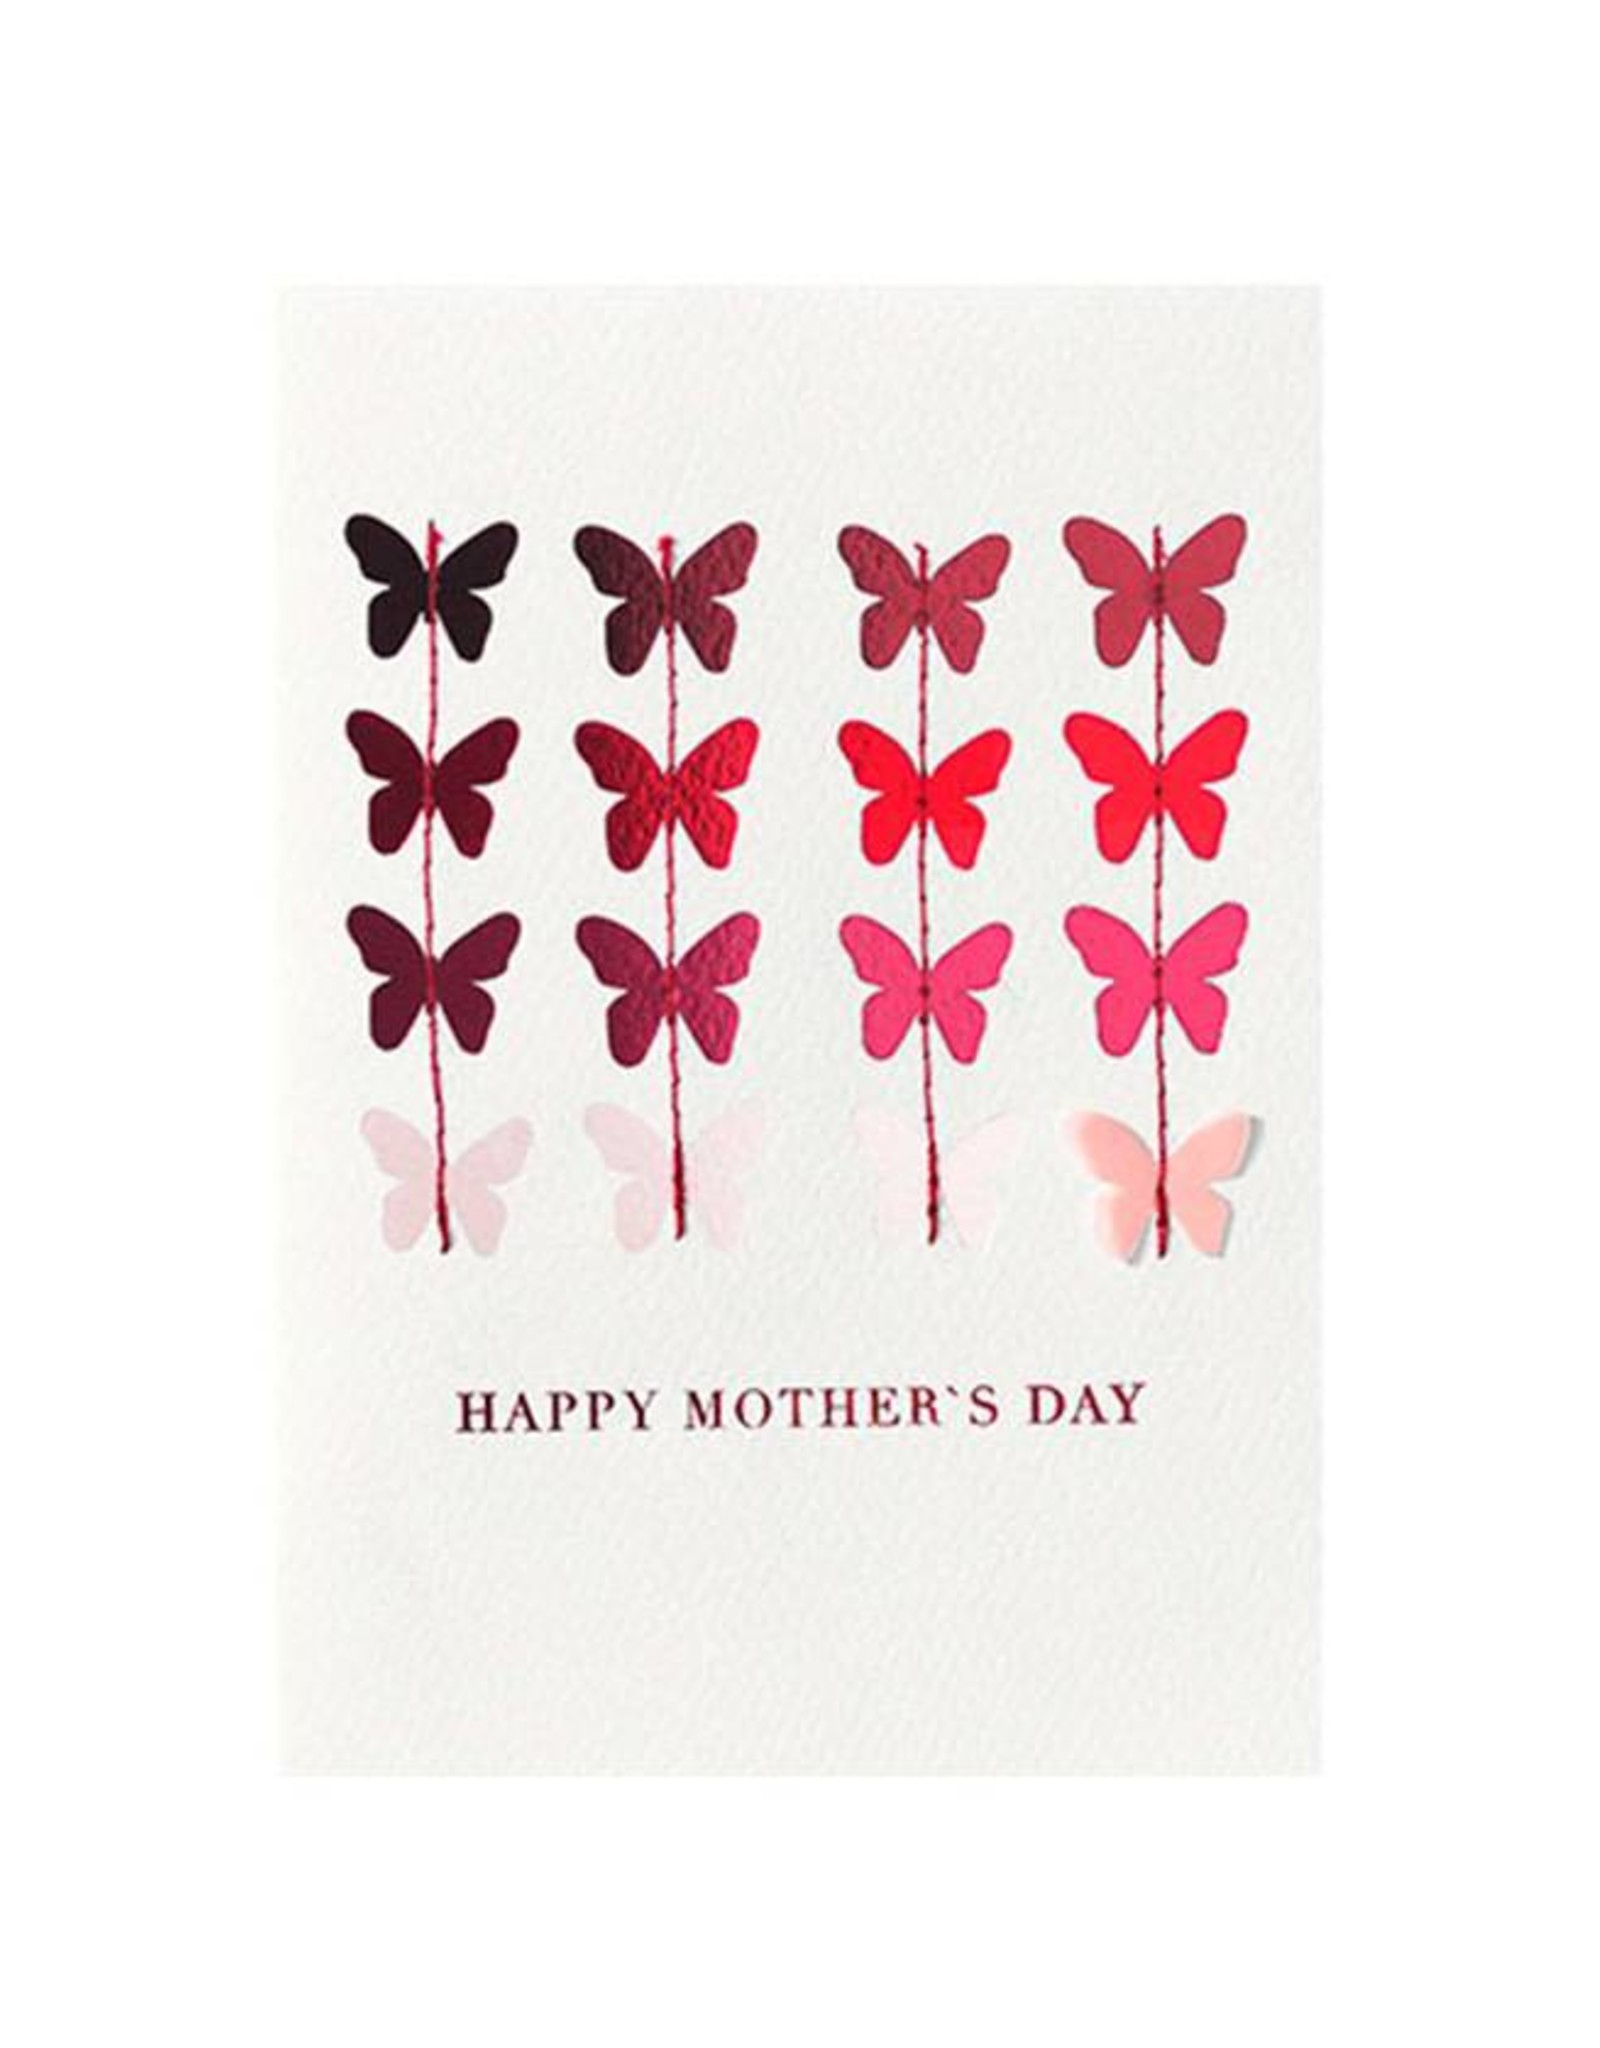 Räder Wenskaart-Happy mother's day